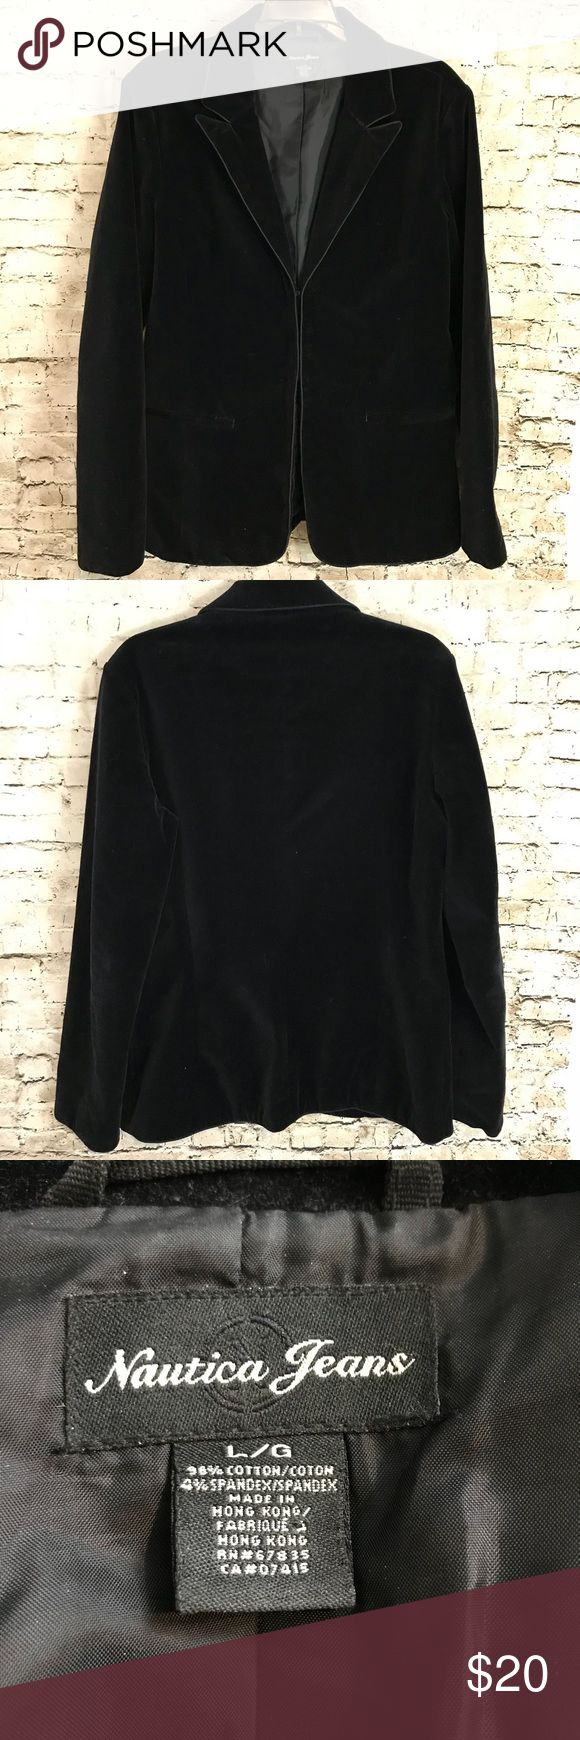 Women's Nautica Jeans Large Black Velvet Jacket You will be purchasing a Women's Nautica Jeans Black Velvet Blazer Jacket Size Large - see photos for measurements to determine fit. It is used. If you have any further questions, please do not hesitate to ask. Thanks for Looking! Sku# EPM Nautica Jeans Jackets & Coats Blazers